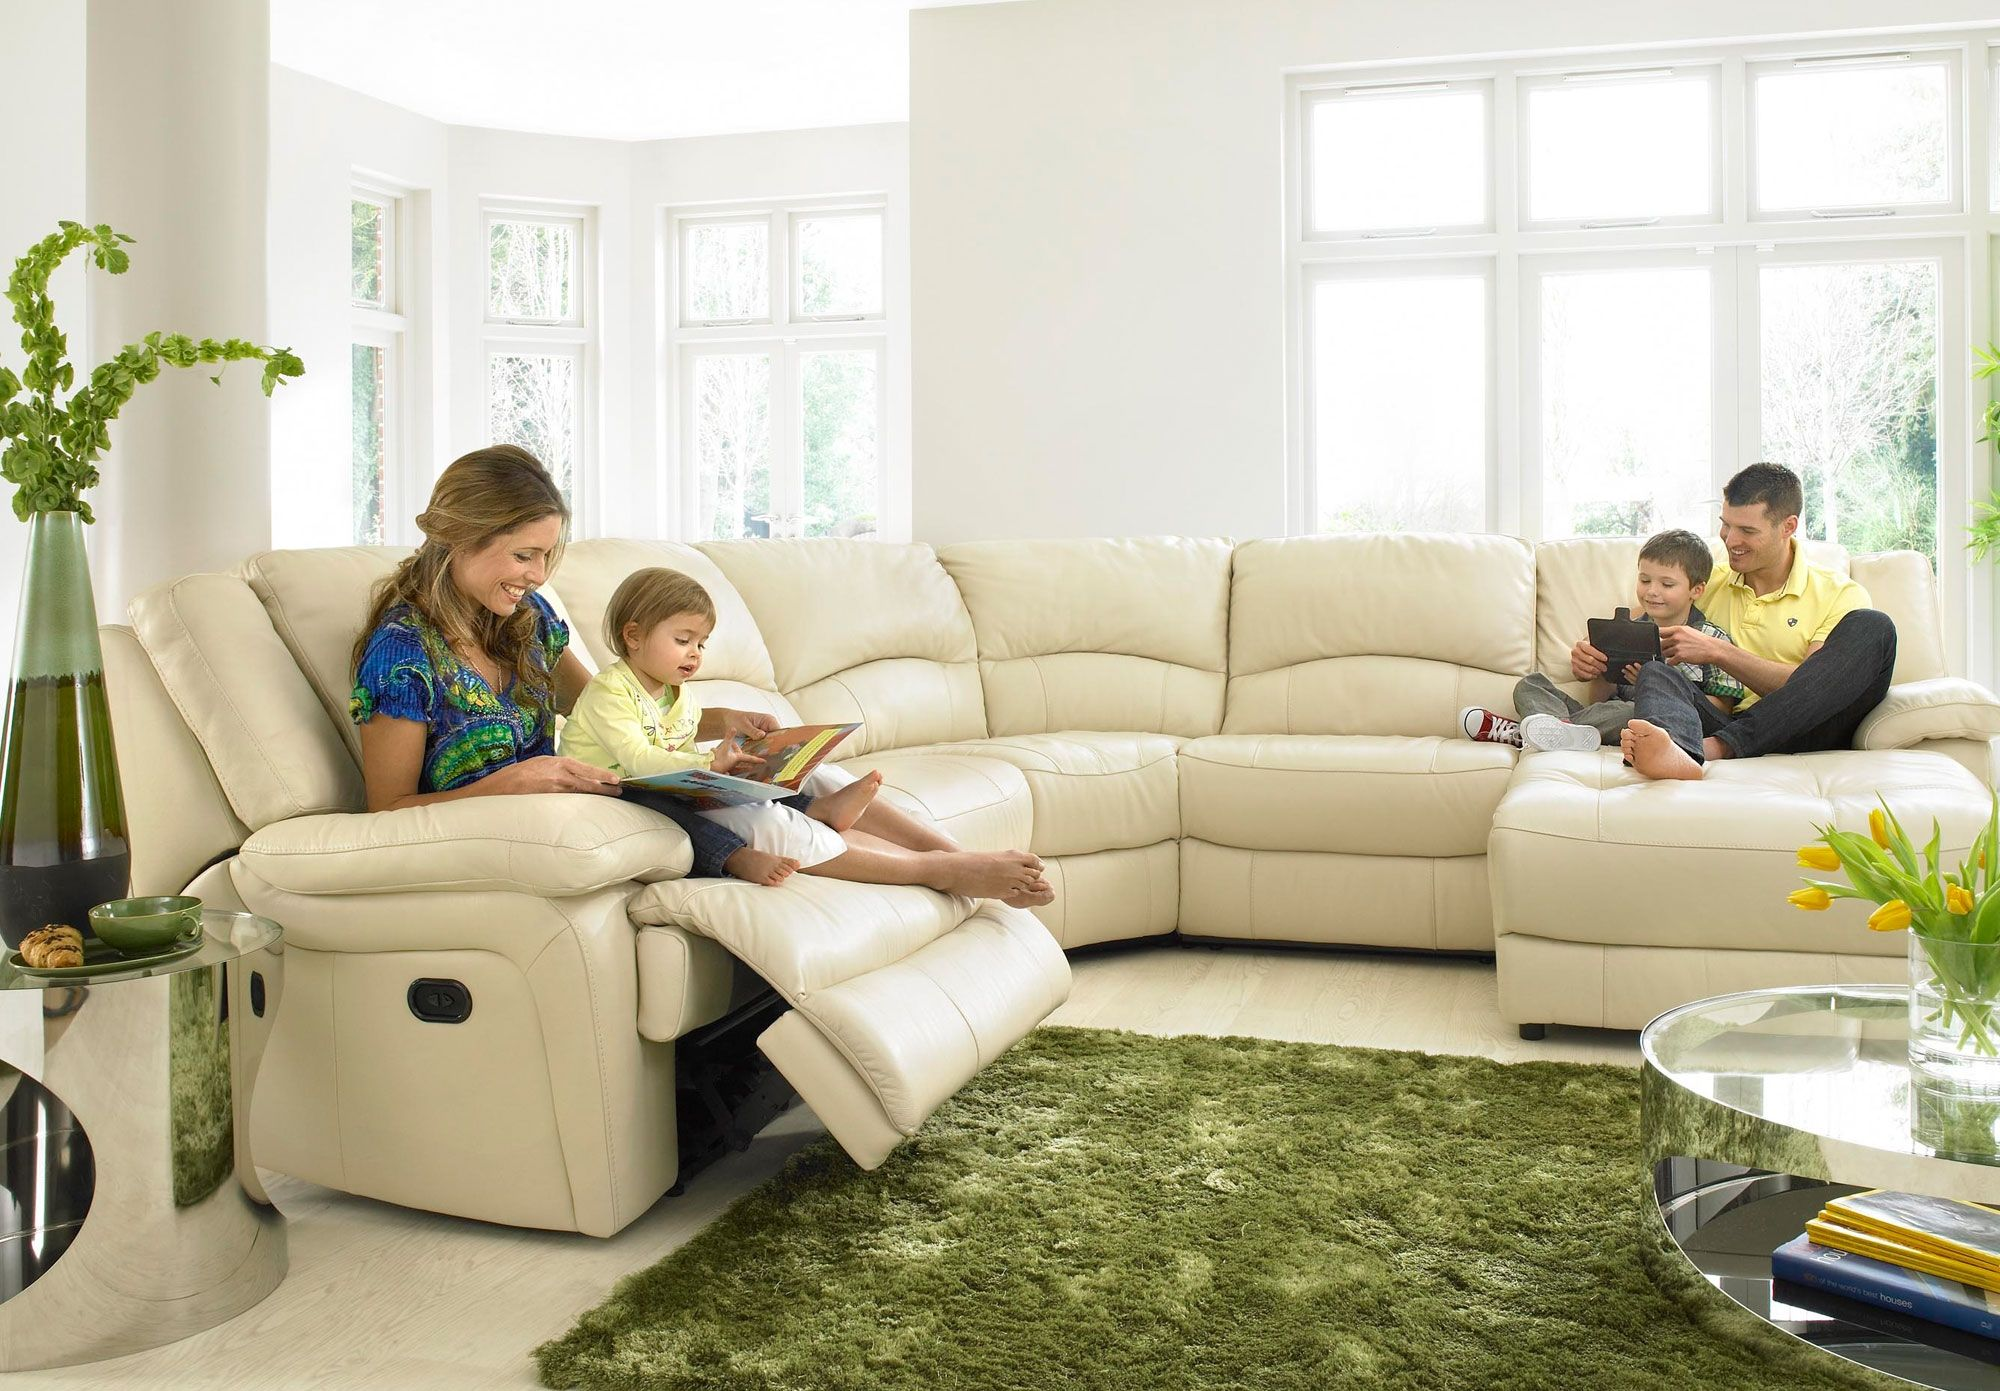 Superbe Corner Group With Recliner Chaise   Ronson   Sofa Sets   Sofas   FREE  Delivery   Furniture Village